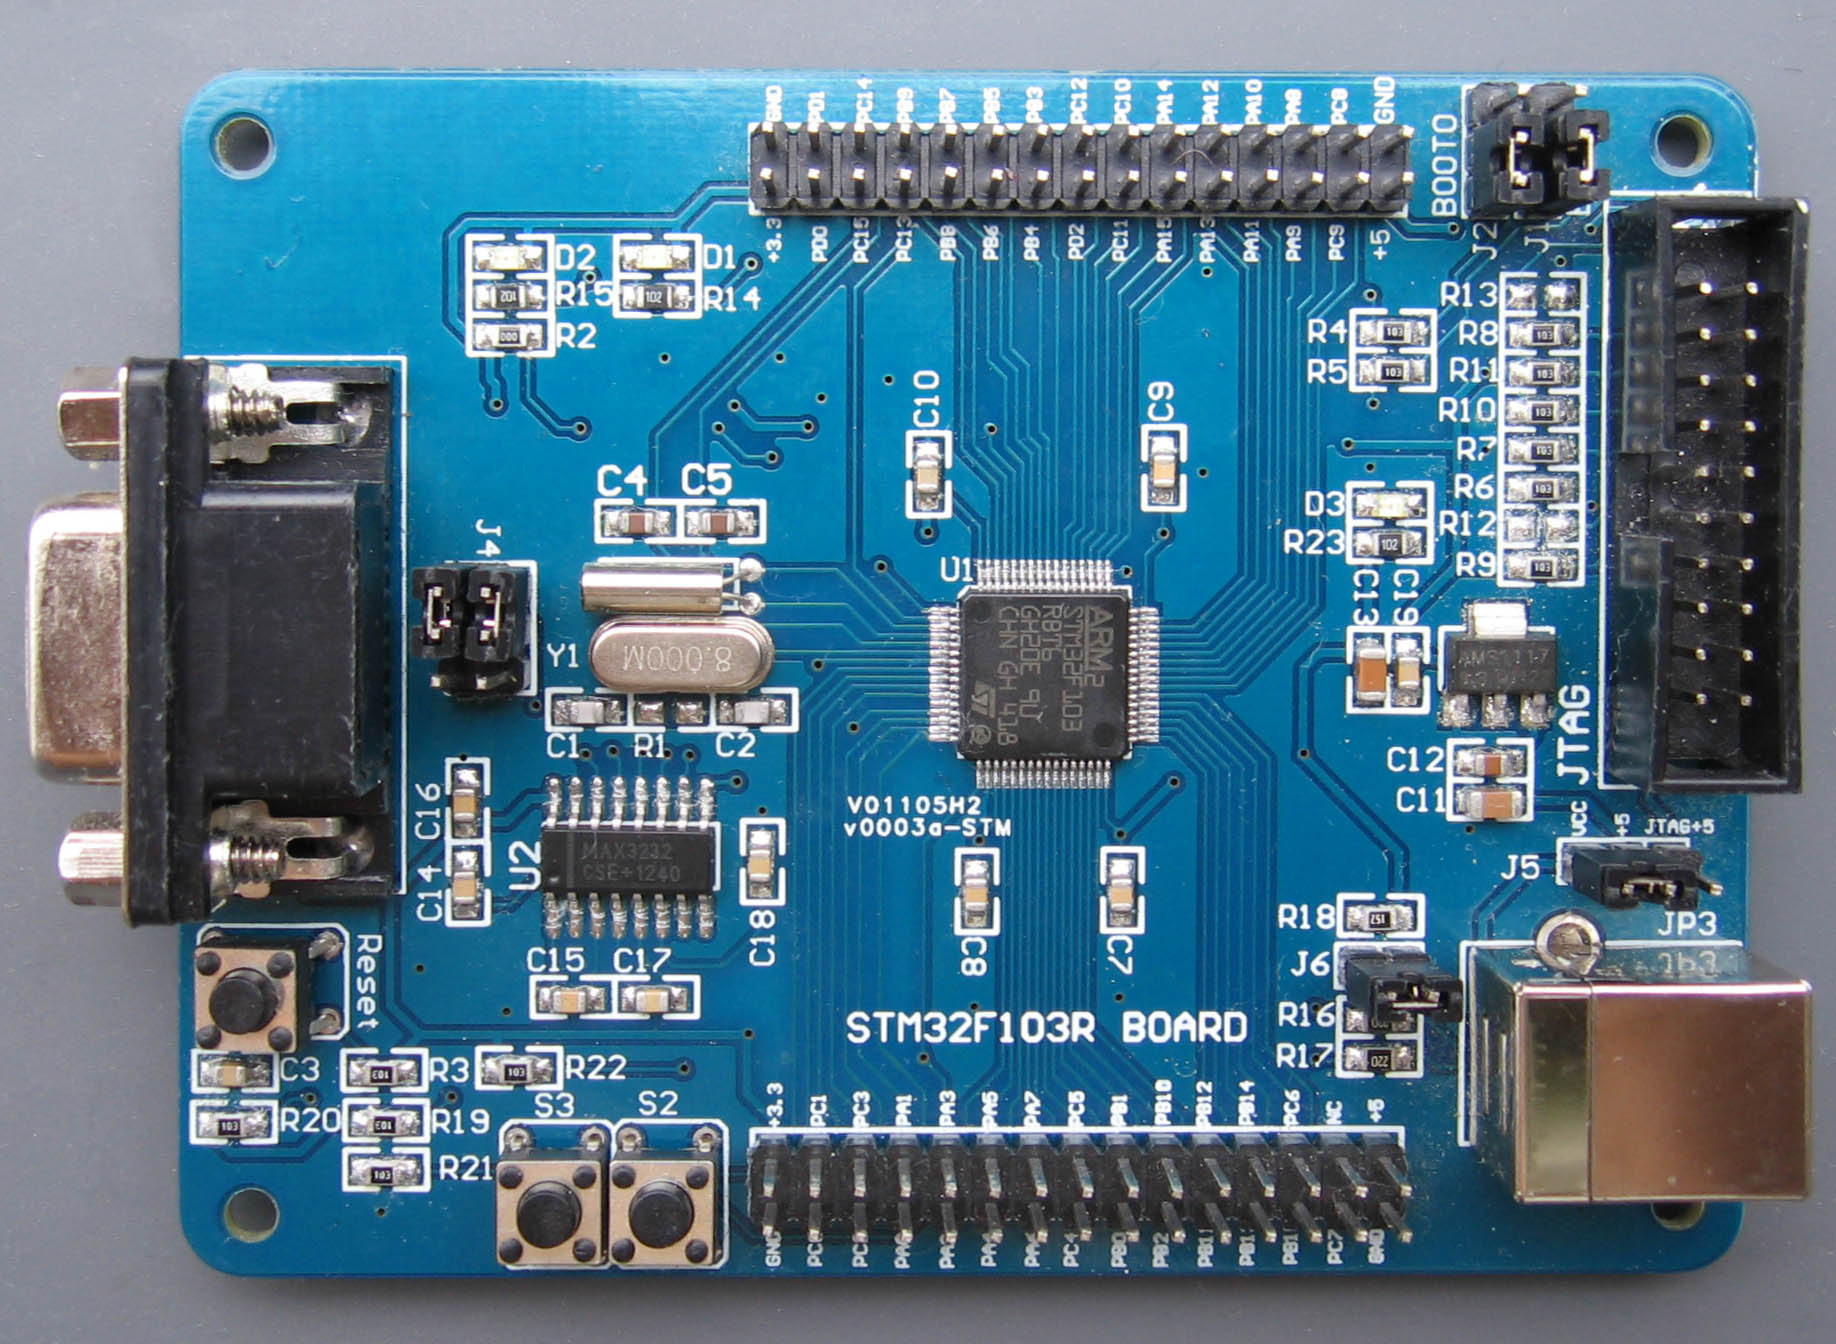 STM32F103R BOARD top